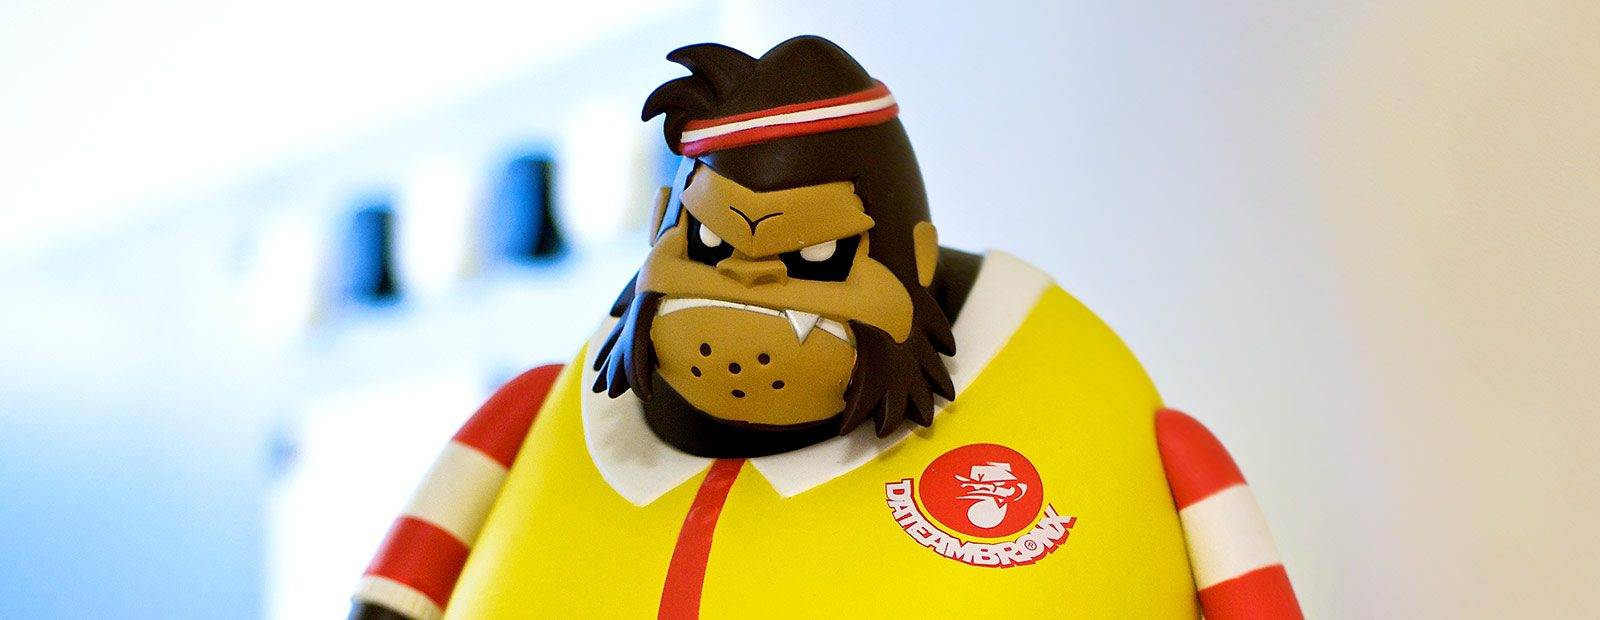 Toy Gorilla rocking yellow